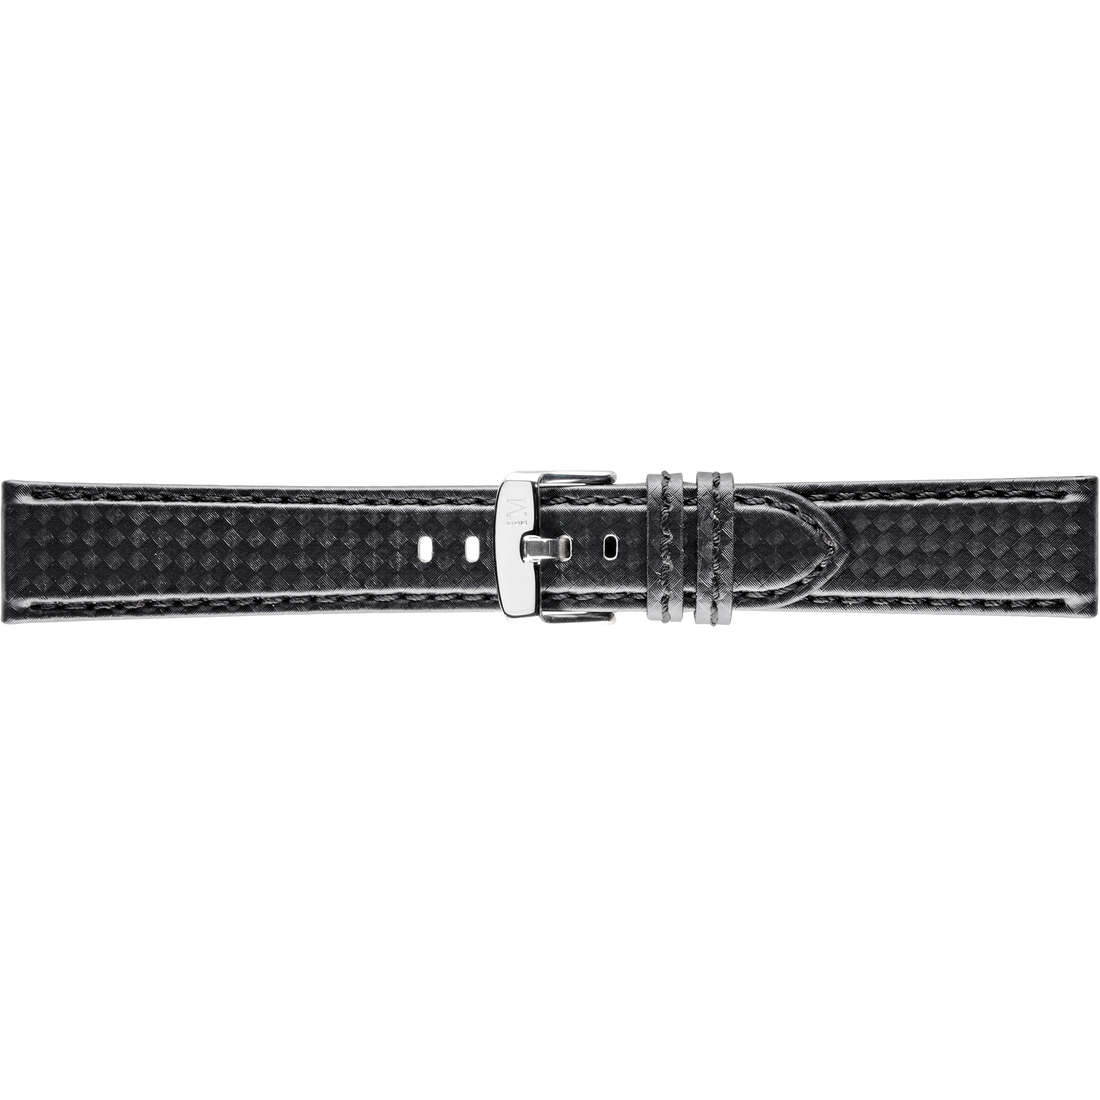 watch watch bands watch straps man Morellato Linea Sport A01U3586977819CR22